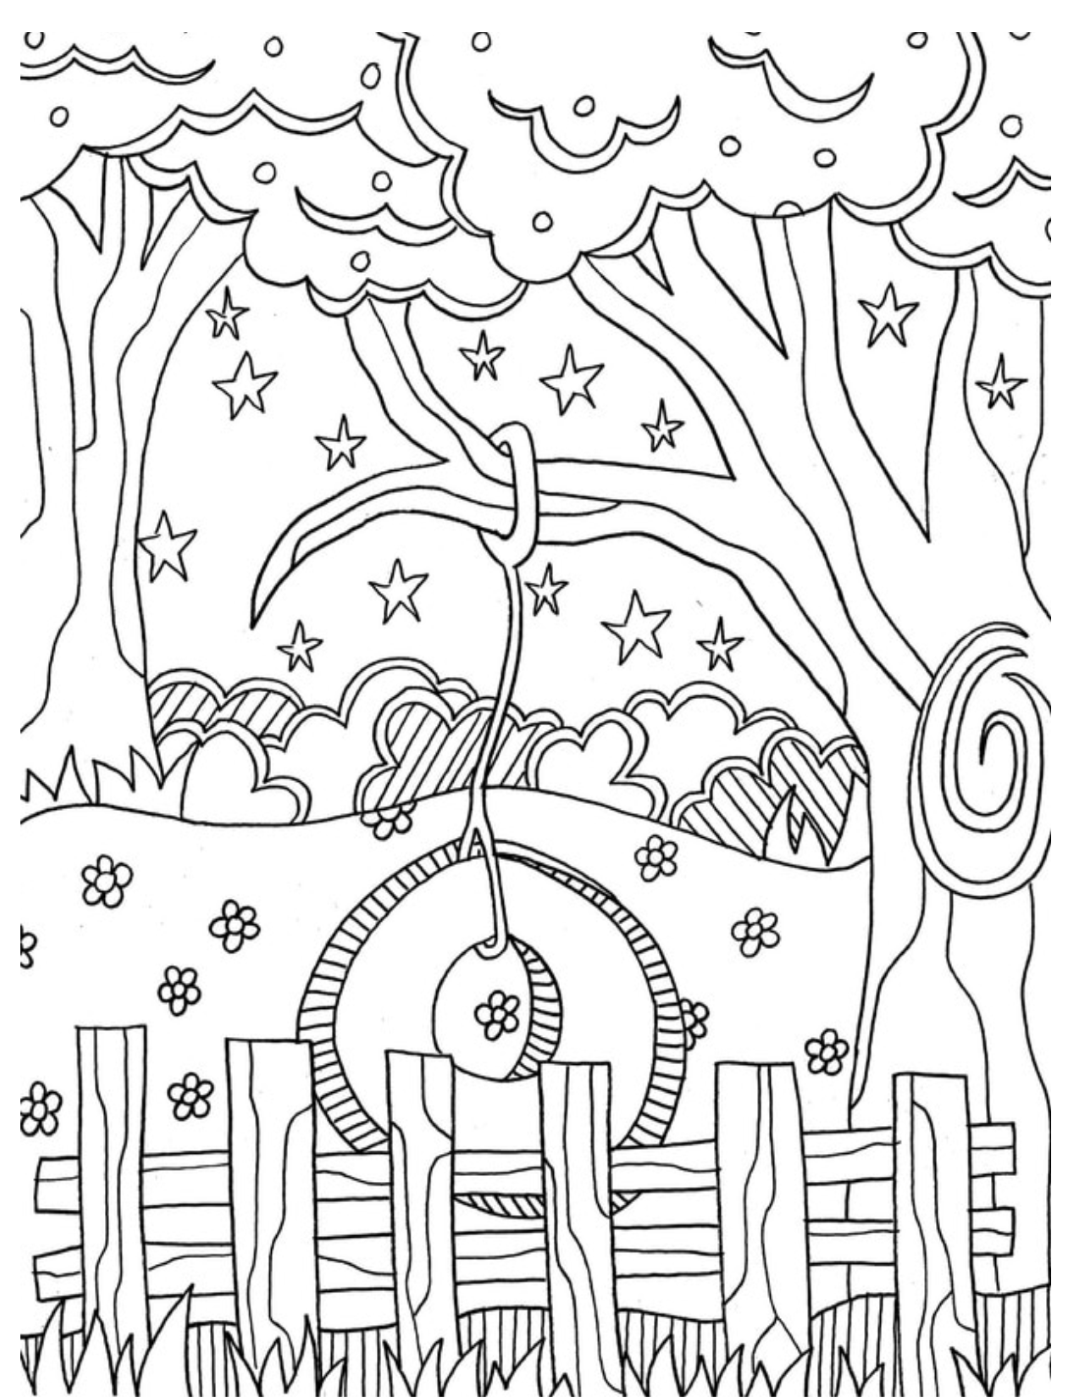 summer coloring pages summer girls coloring page wecoloringpagecom coloring pages summer